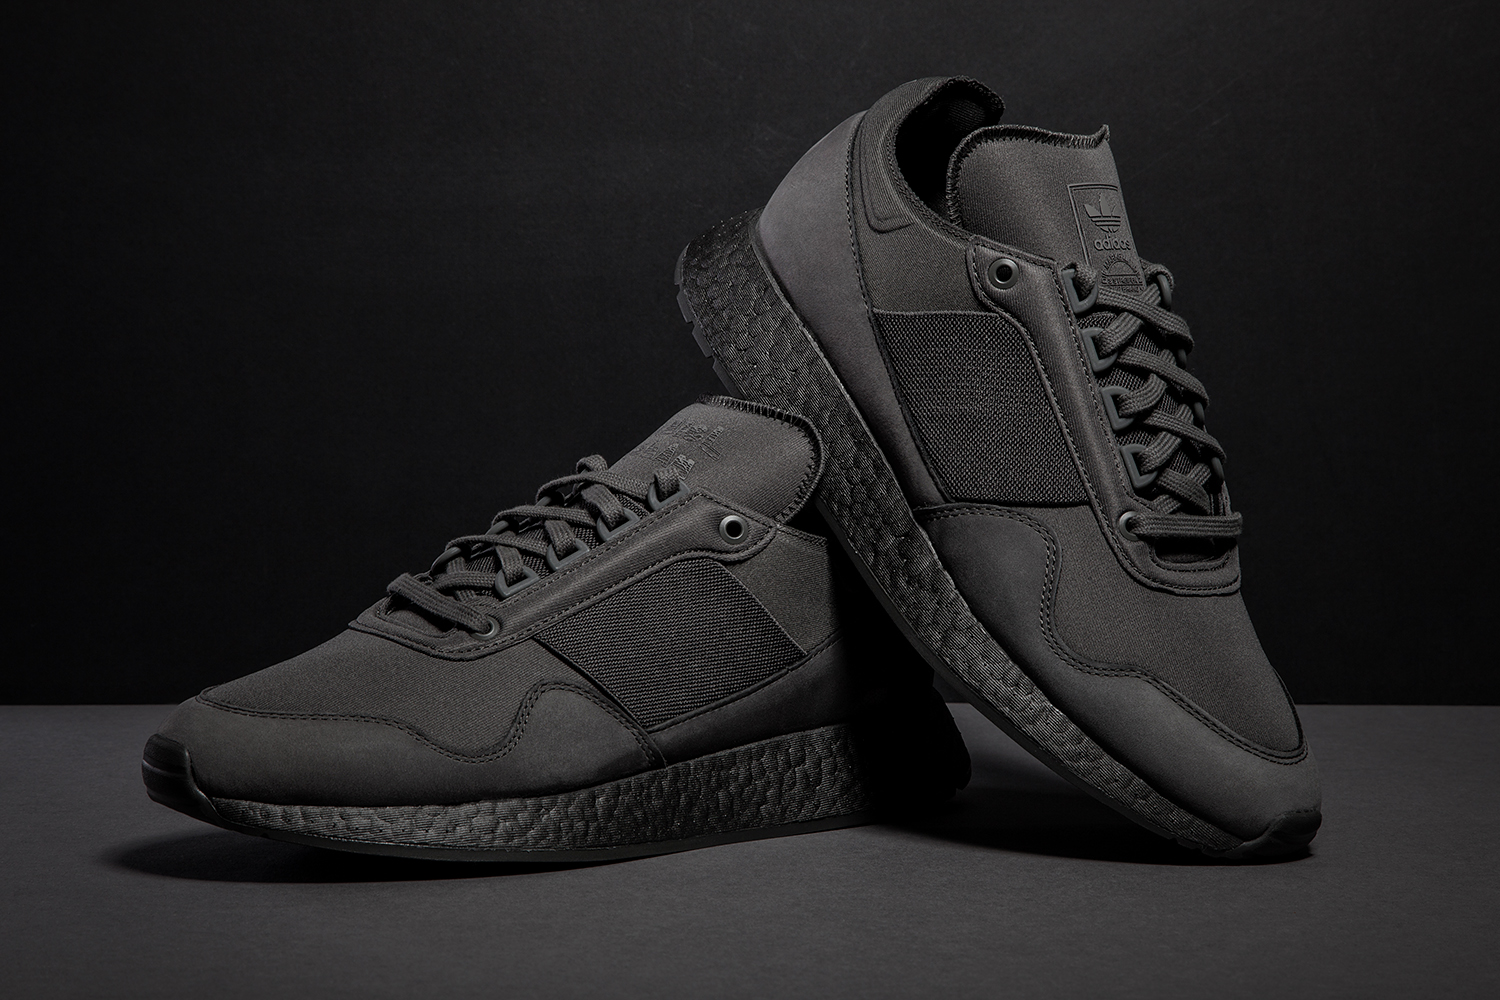 adidas x Daniel Arsham_photography by kev foster for philip browne 3.jpg